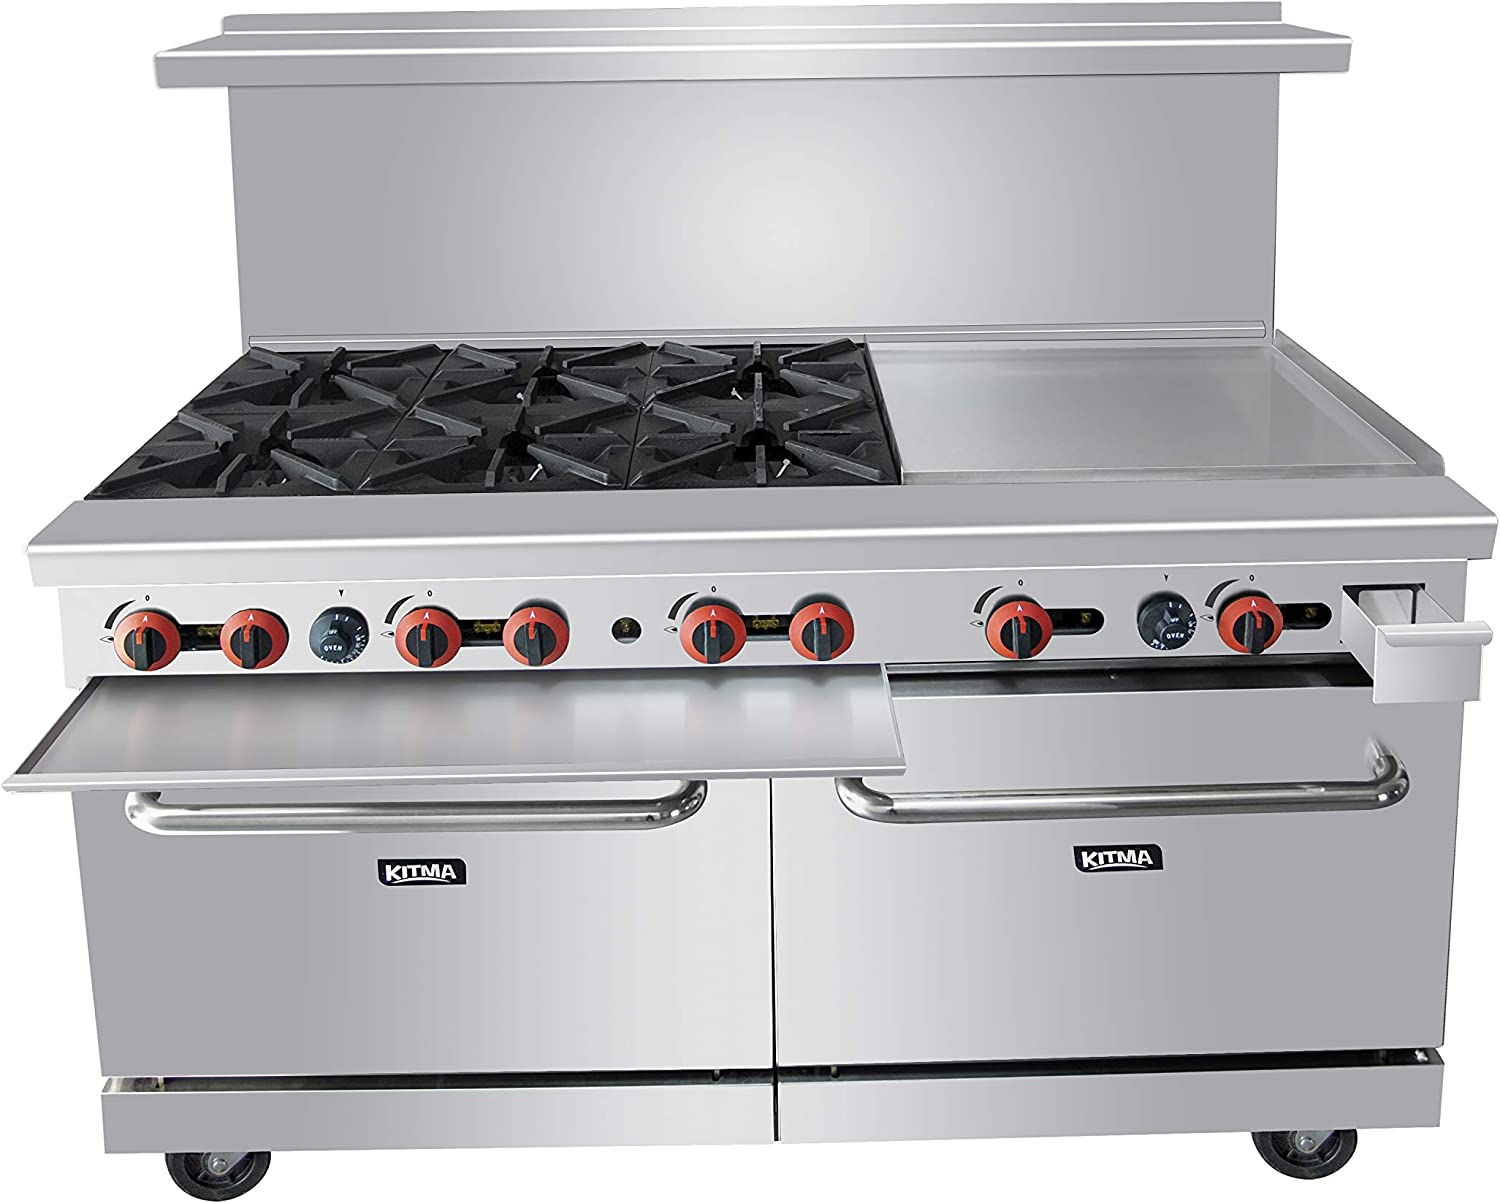 Liquefied Propane Commercial Range 6 Burners with 24 Inches Griddle and 2 Ovens-KITMA 60 Inches Heavy Duty Gas Range Cooking Performance Group for Restaurant